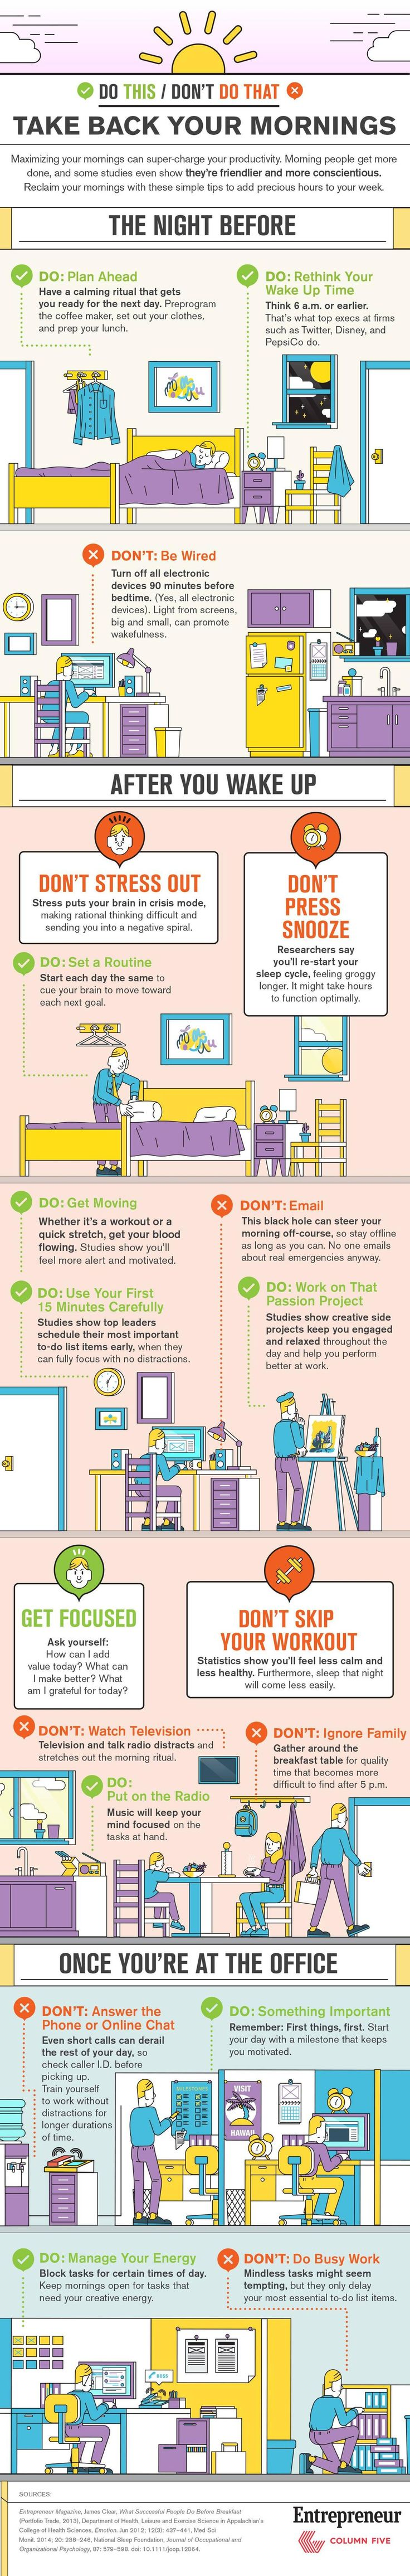 Don't Hit Snooze: Here's How To Get The Most Out Of Your Morning